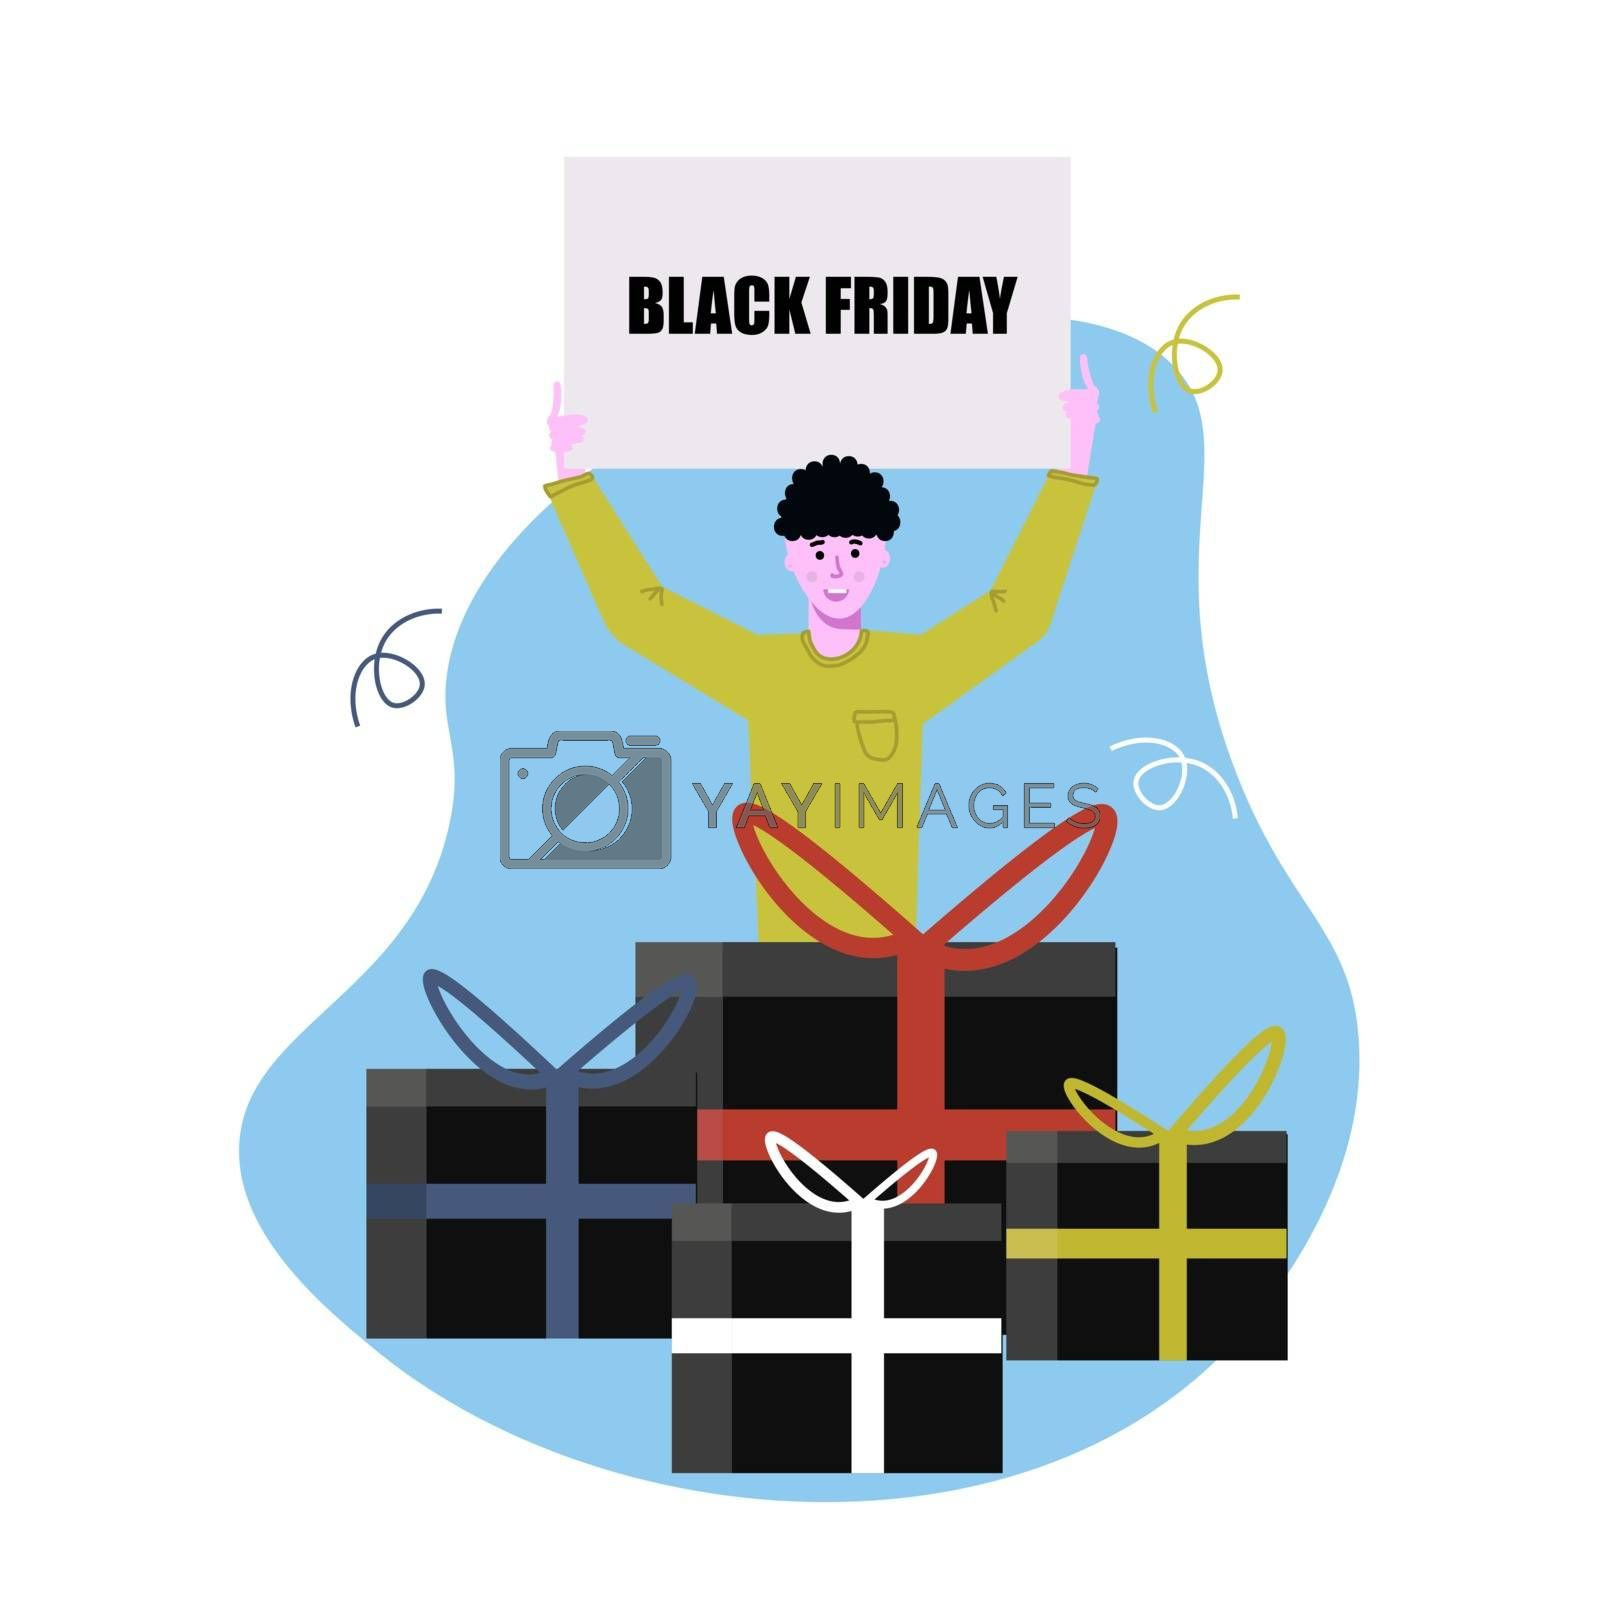 A man holds a poster with a discount announcement. Black Friday. Gifts, boxes, shopping. Shopping hand drawn illustration. Sales promotion. by zaryov